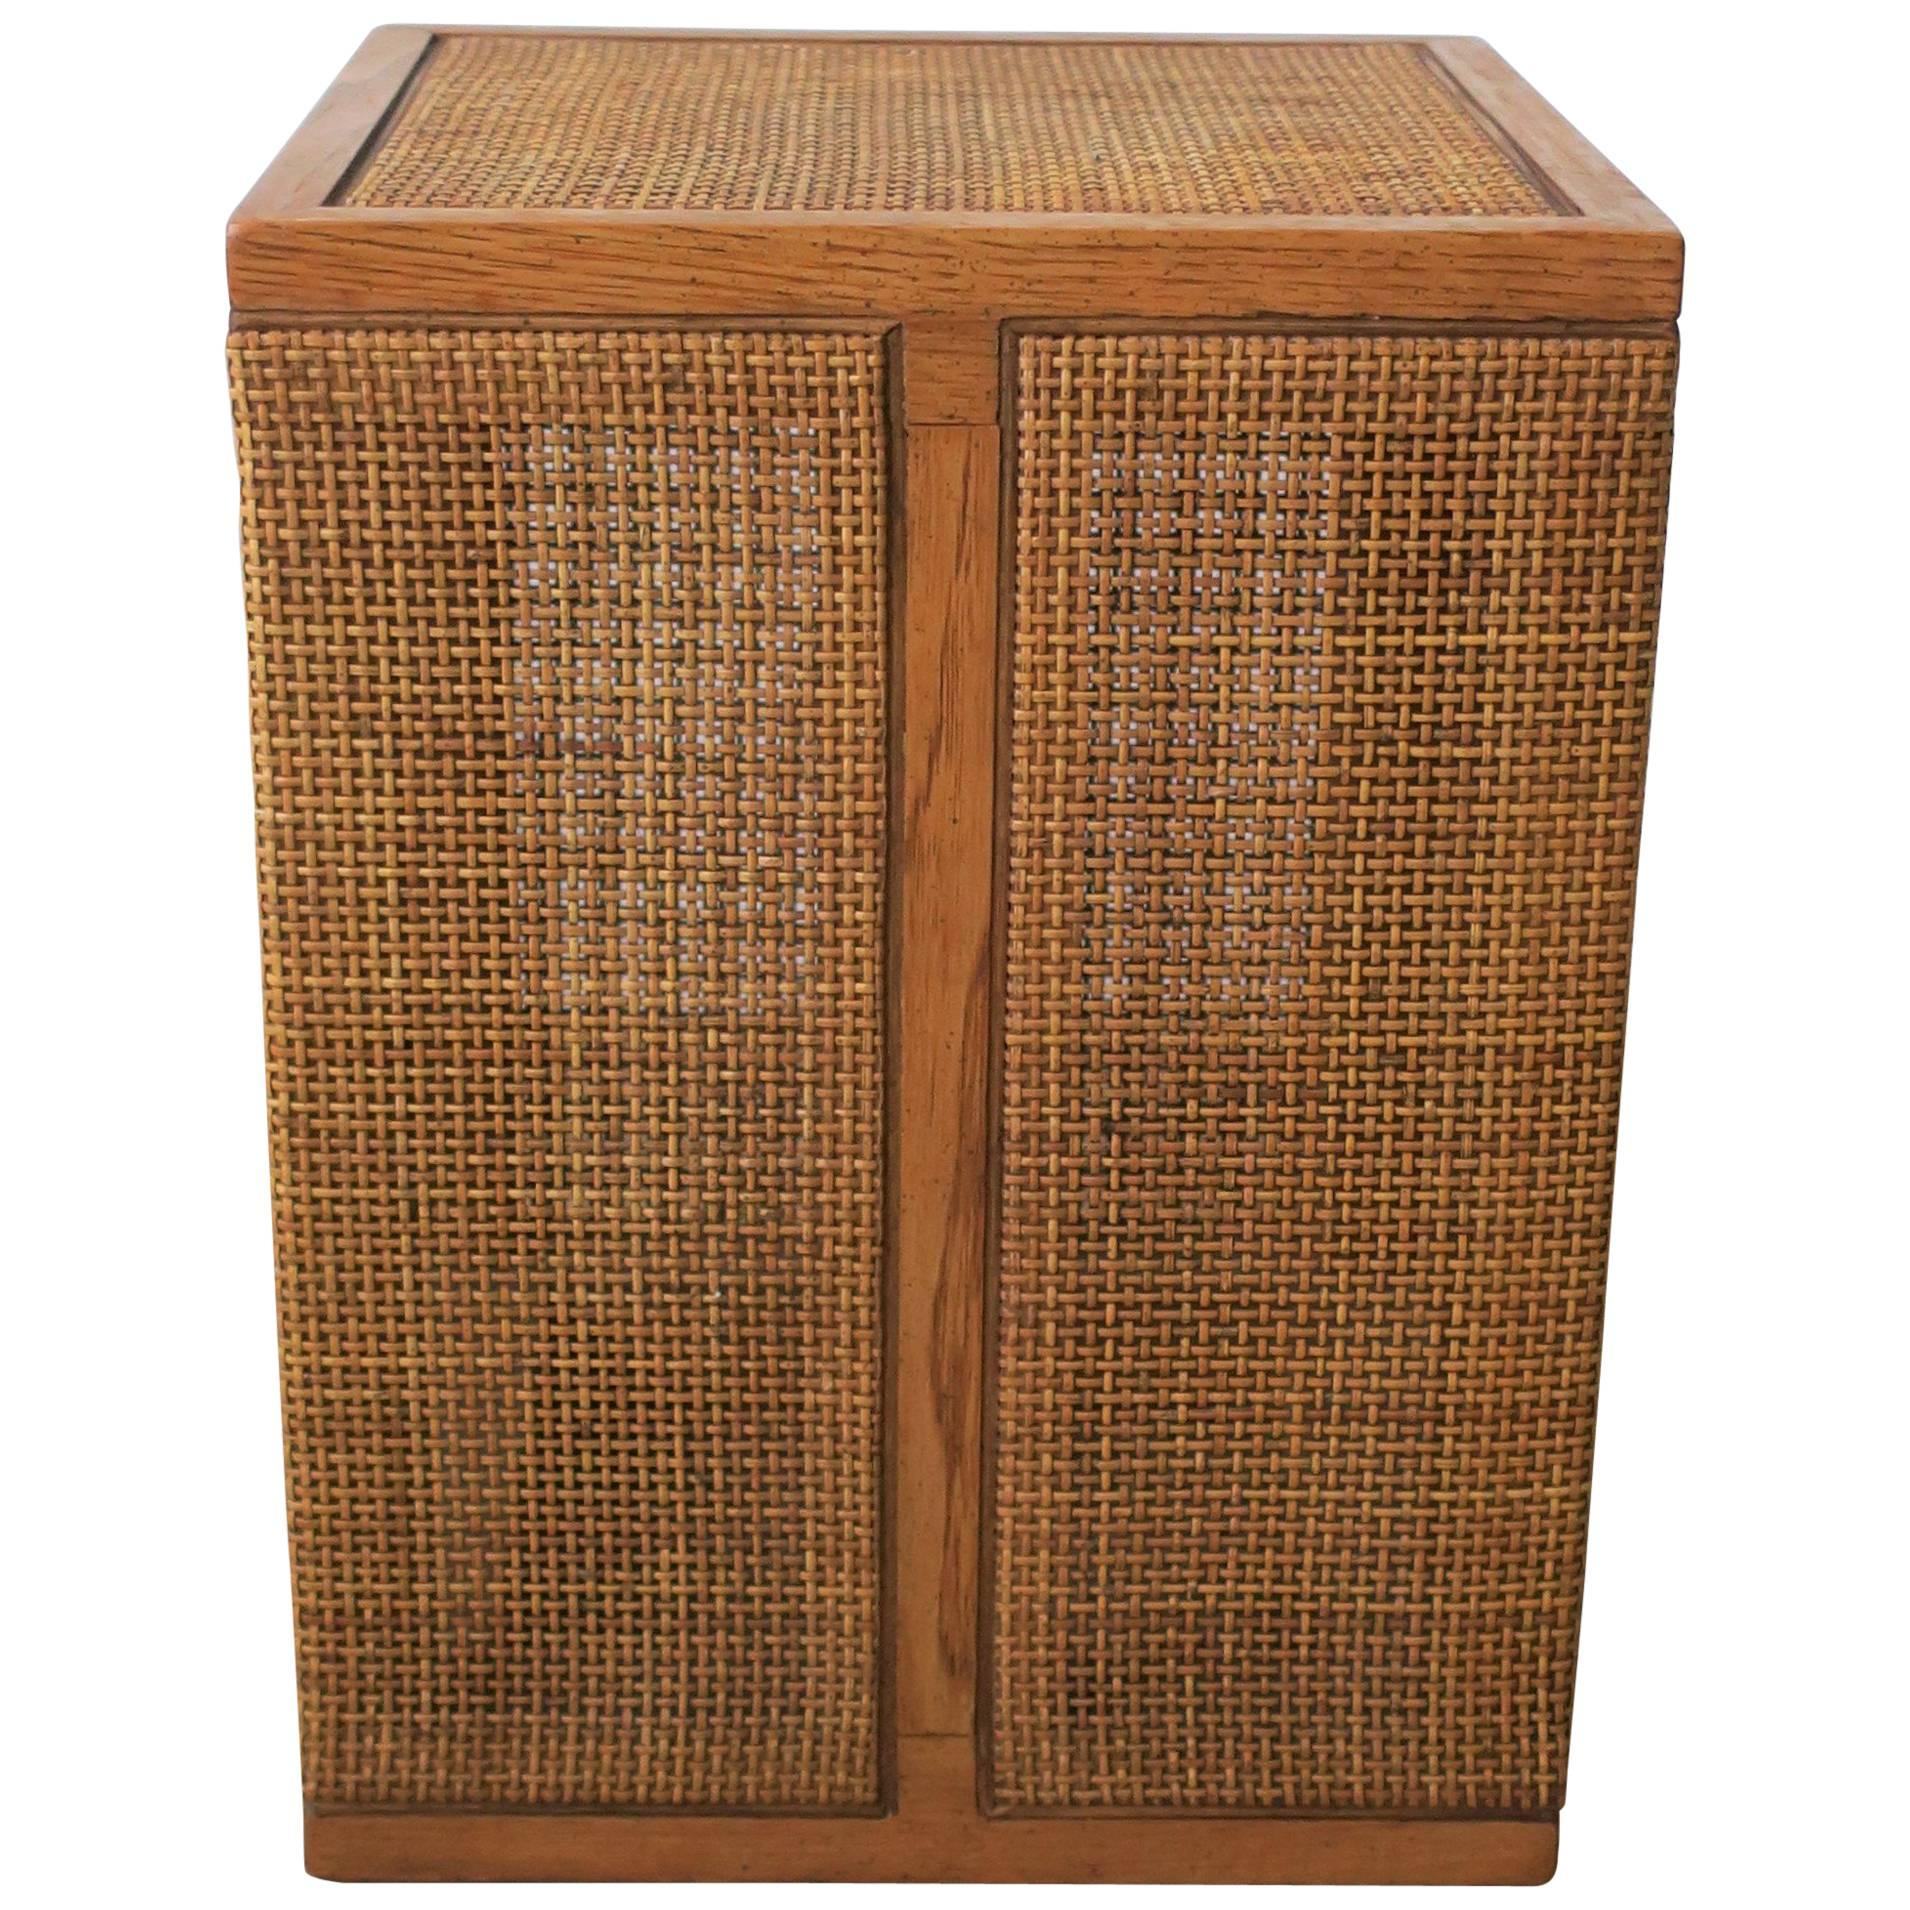 Small Vintage Square Wicker Rattan Side Or End Table, 1970s